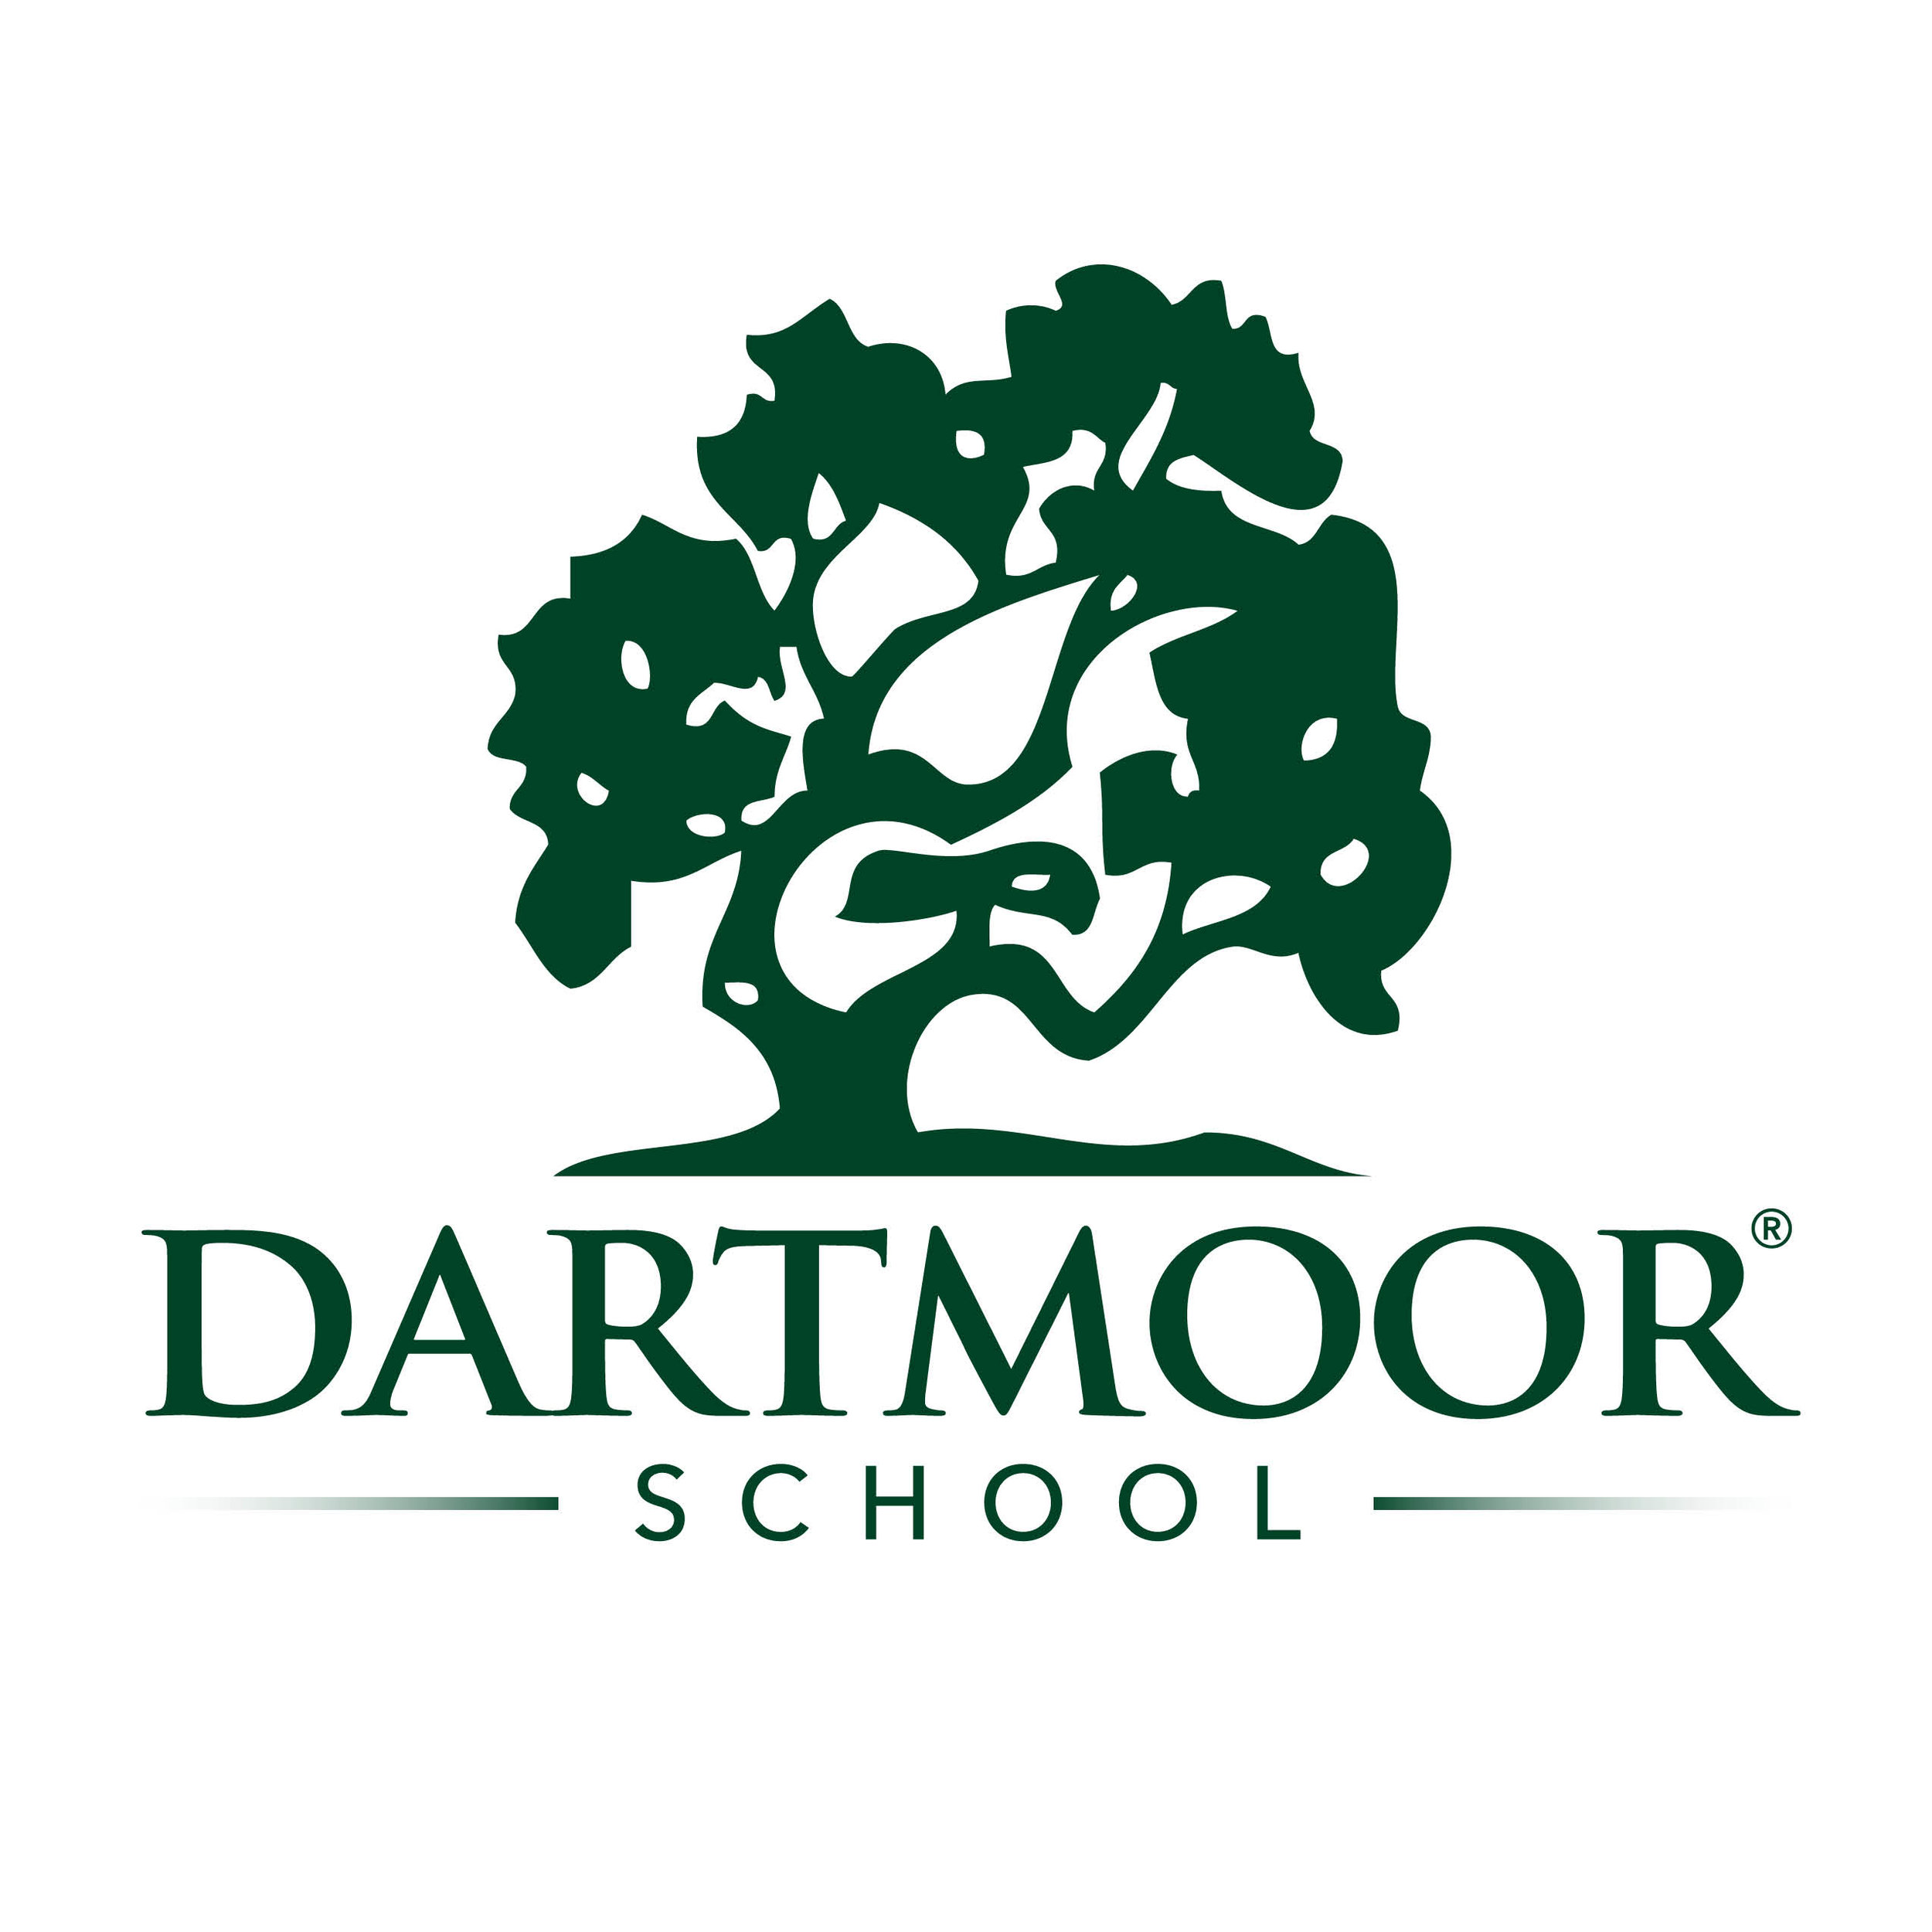 Dartmoor School-Logo-Green.jpg